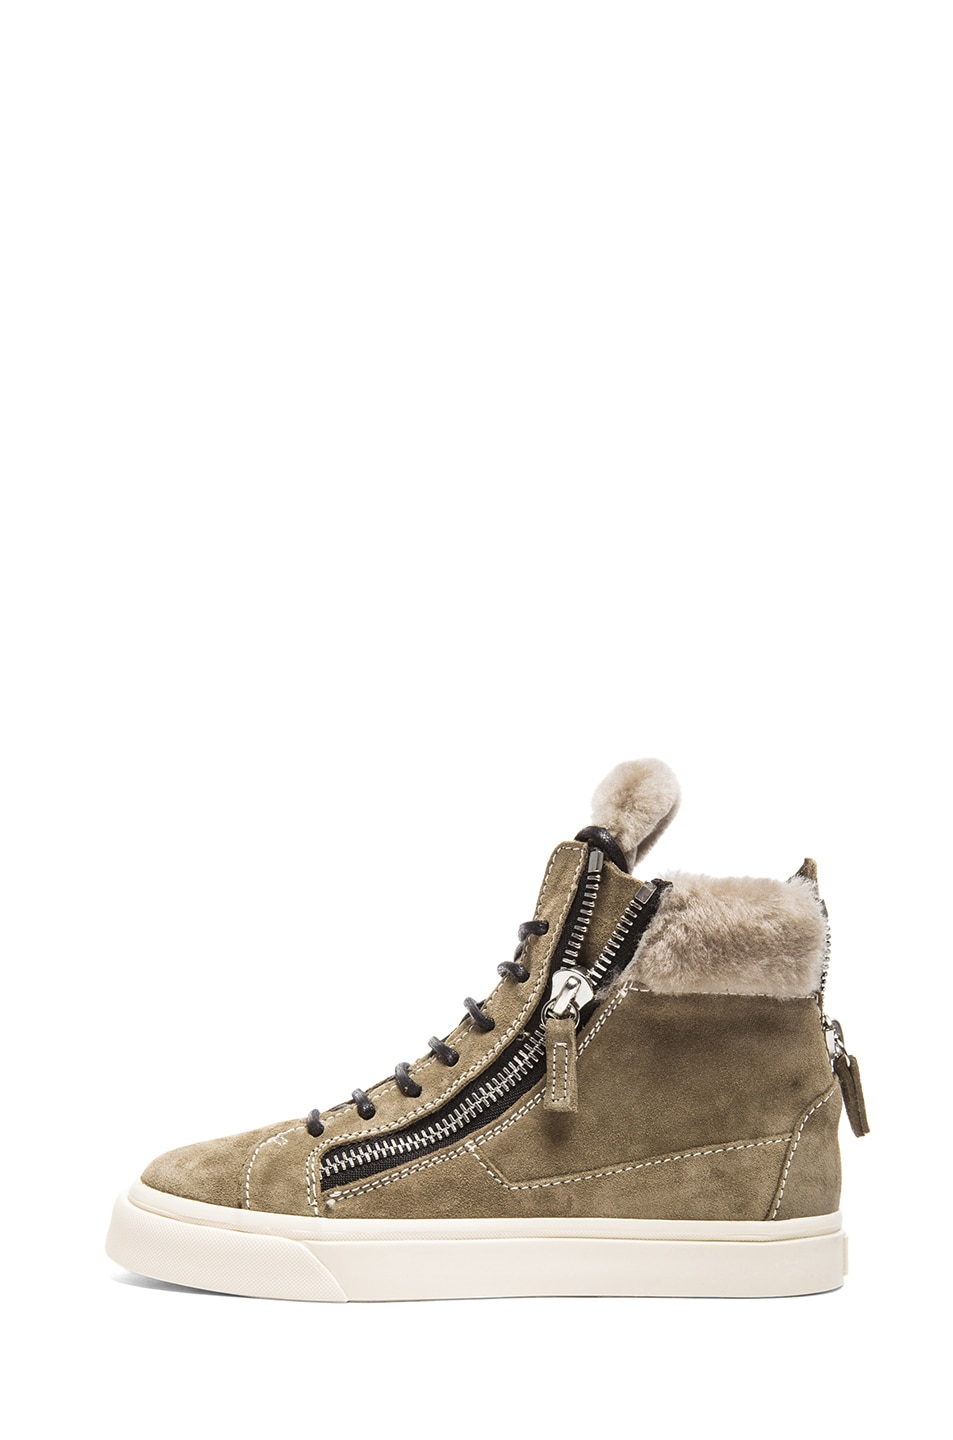 Image 1 of Giuseppe Zanotti High Top Shearling Suede Sneakers in Jasmin